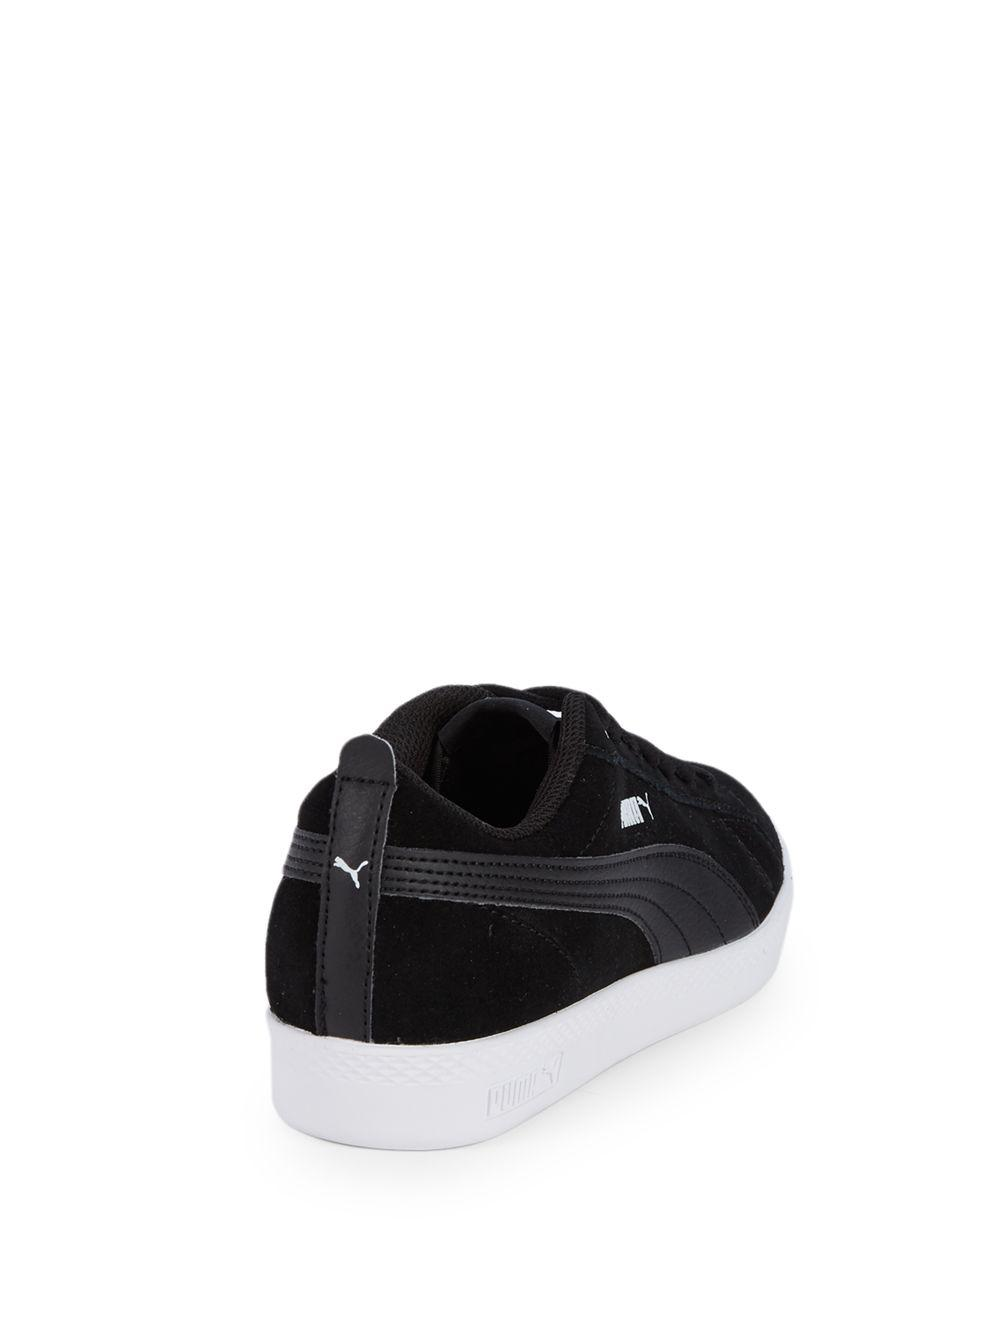 Lyst - PUMA Smash Suede Sneakers in Black for Men a18833f6d